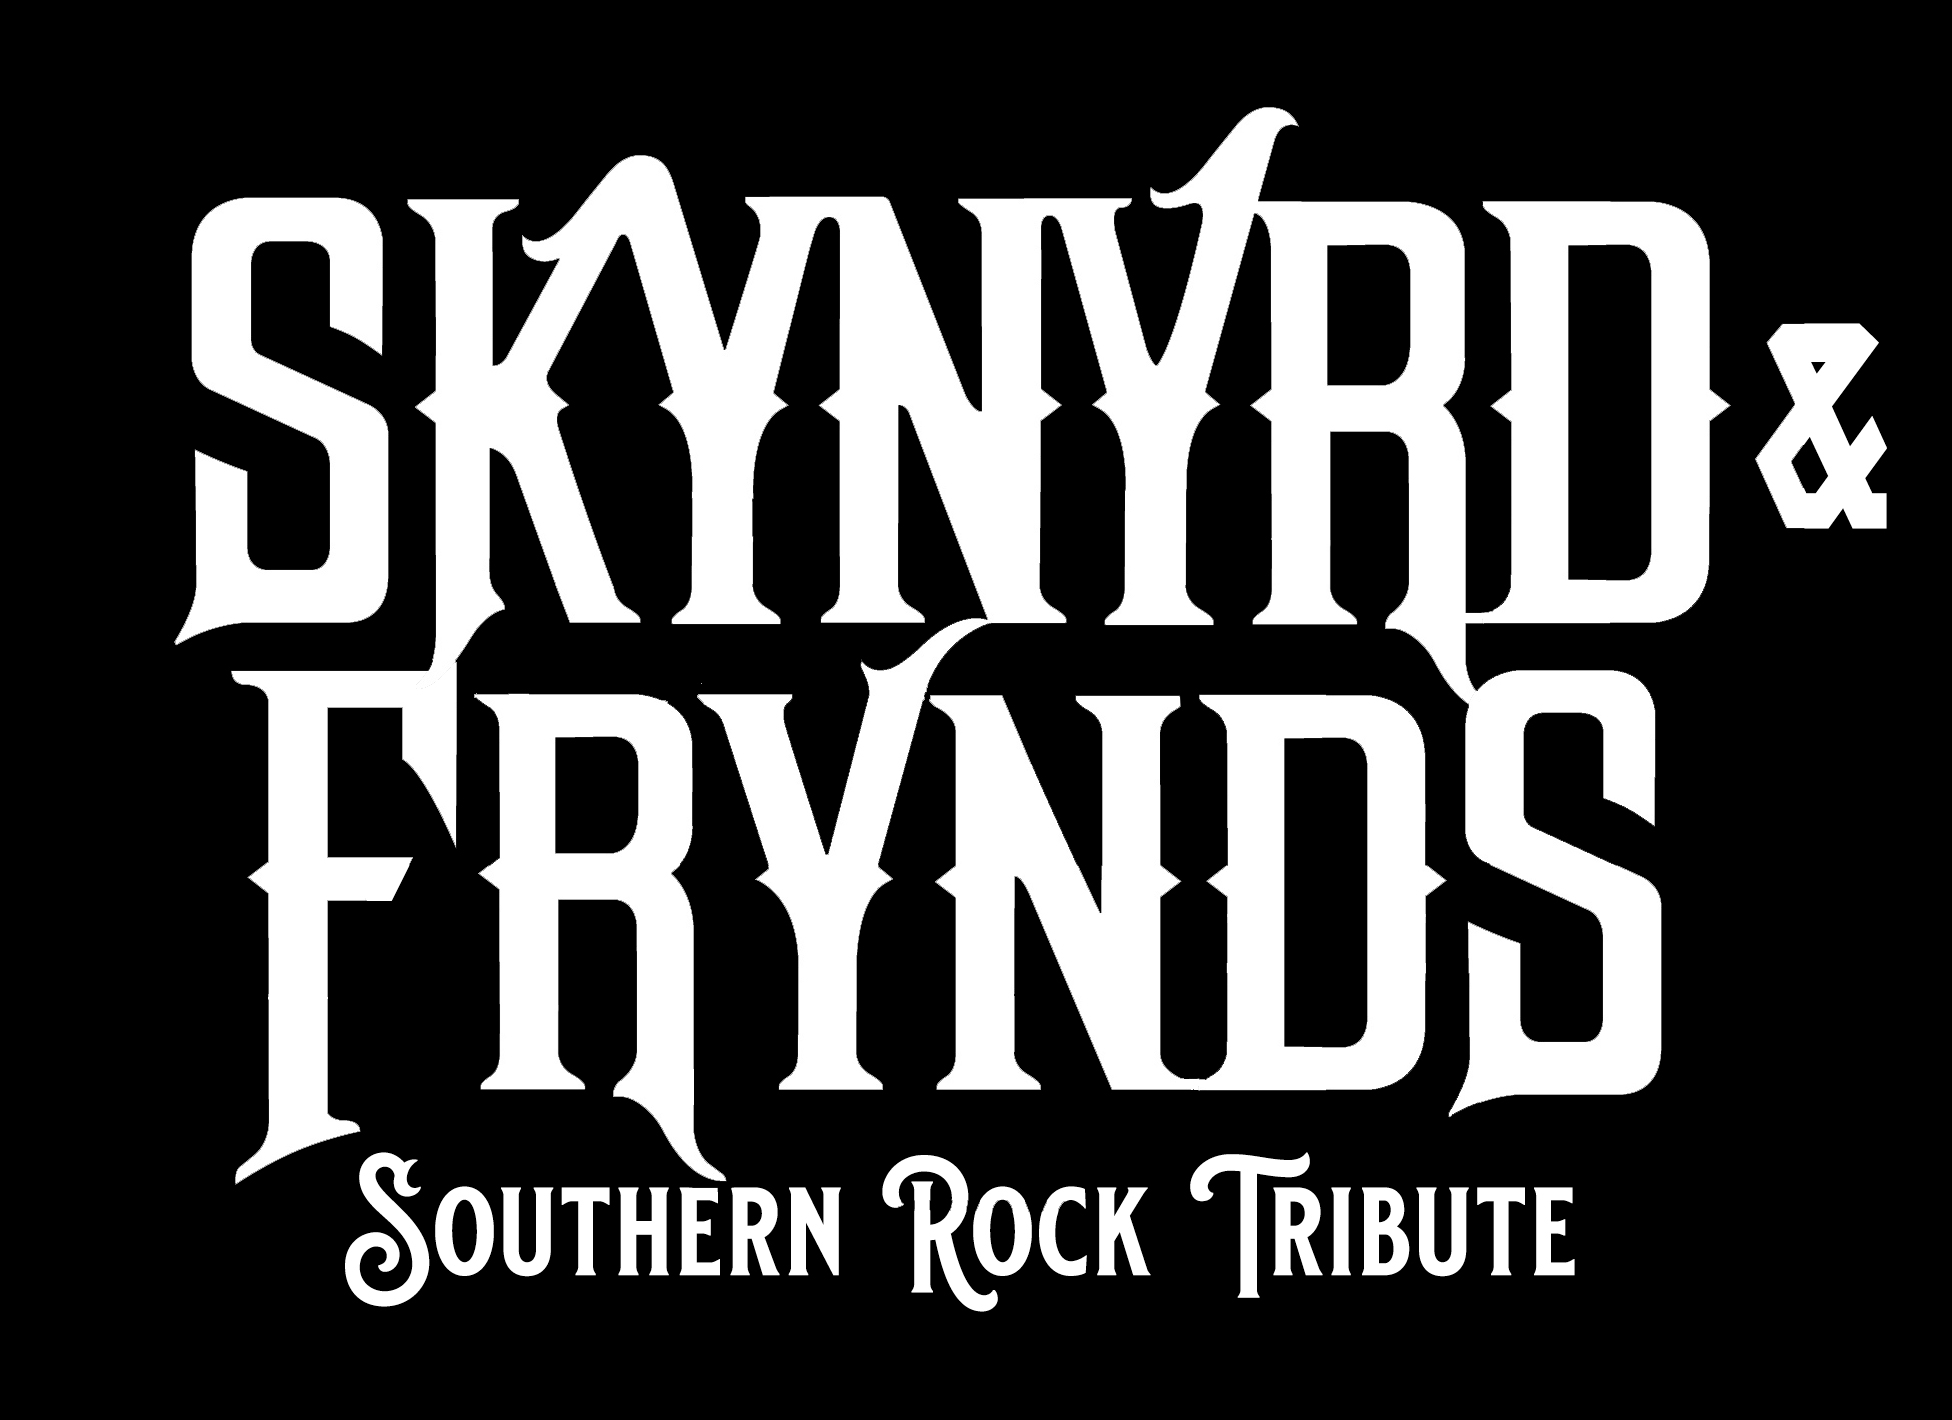 SouthBound and Company Skynyrd and Frynds Tribute